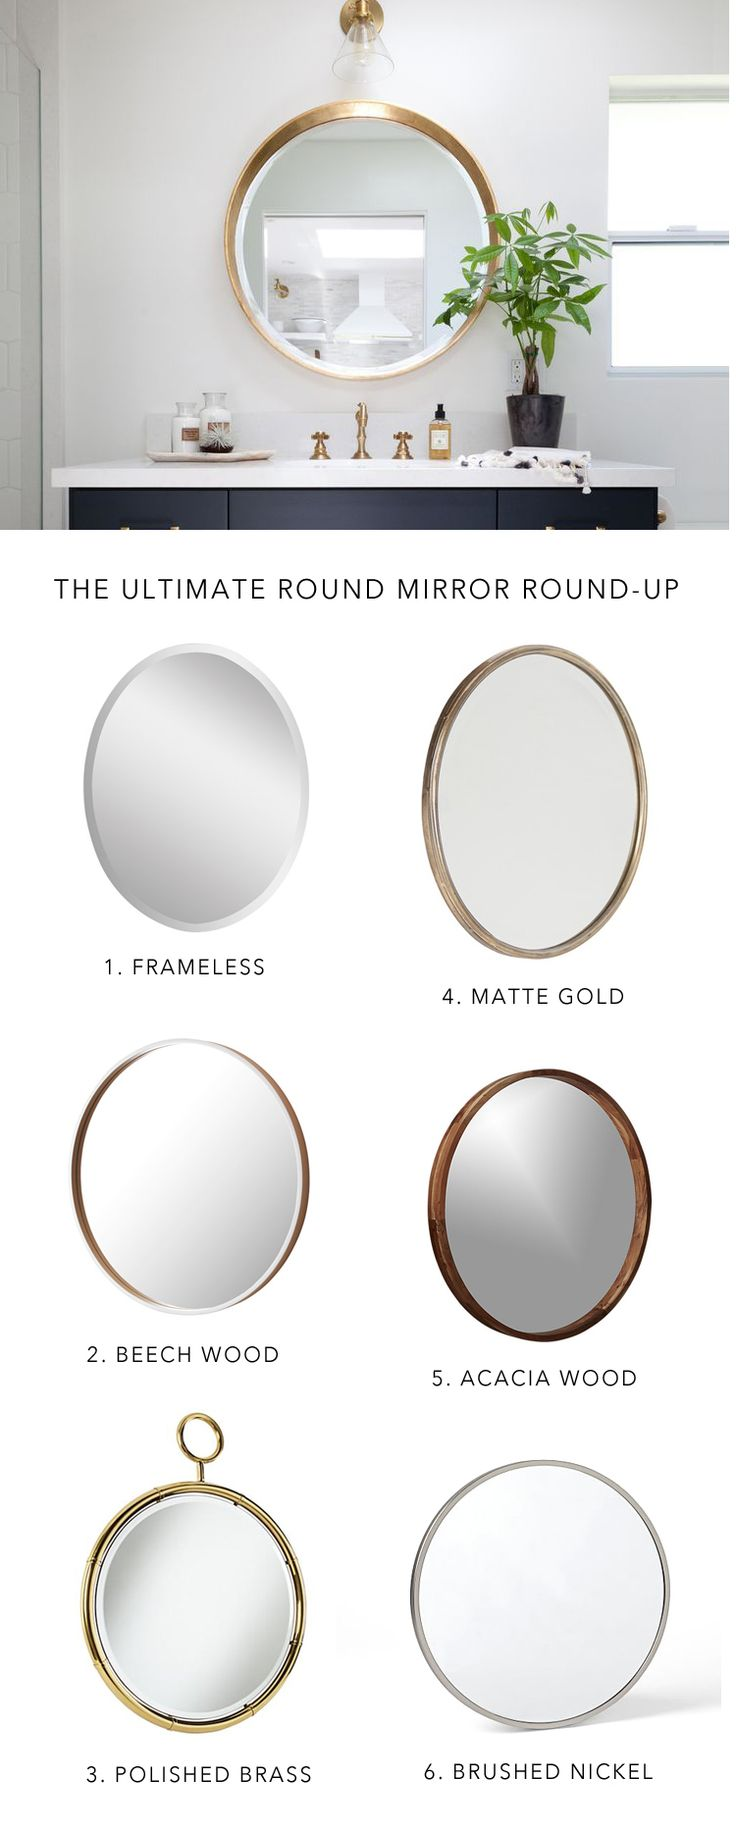 instantly update your bathroom decor for 2016 with a round bathroom mirror    @citysage